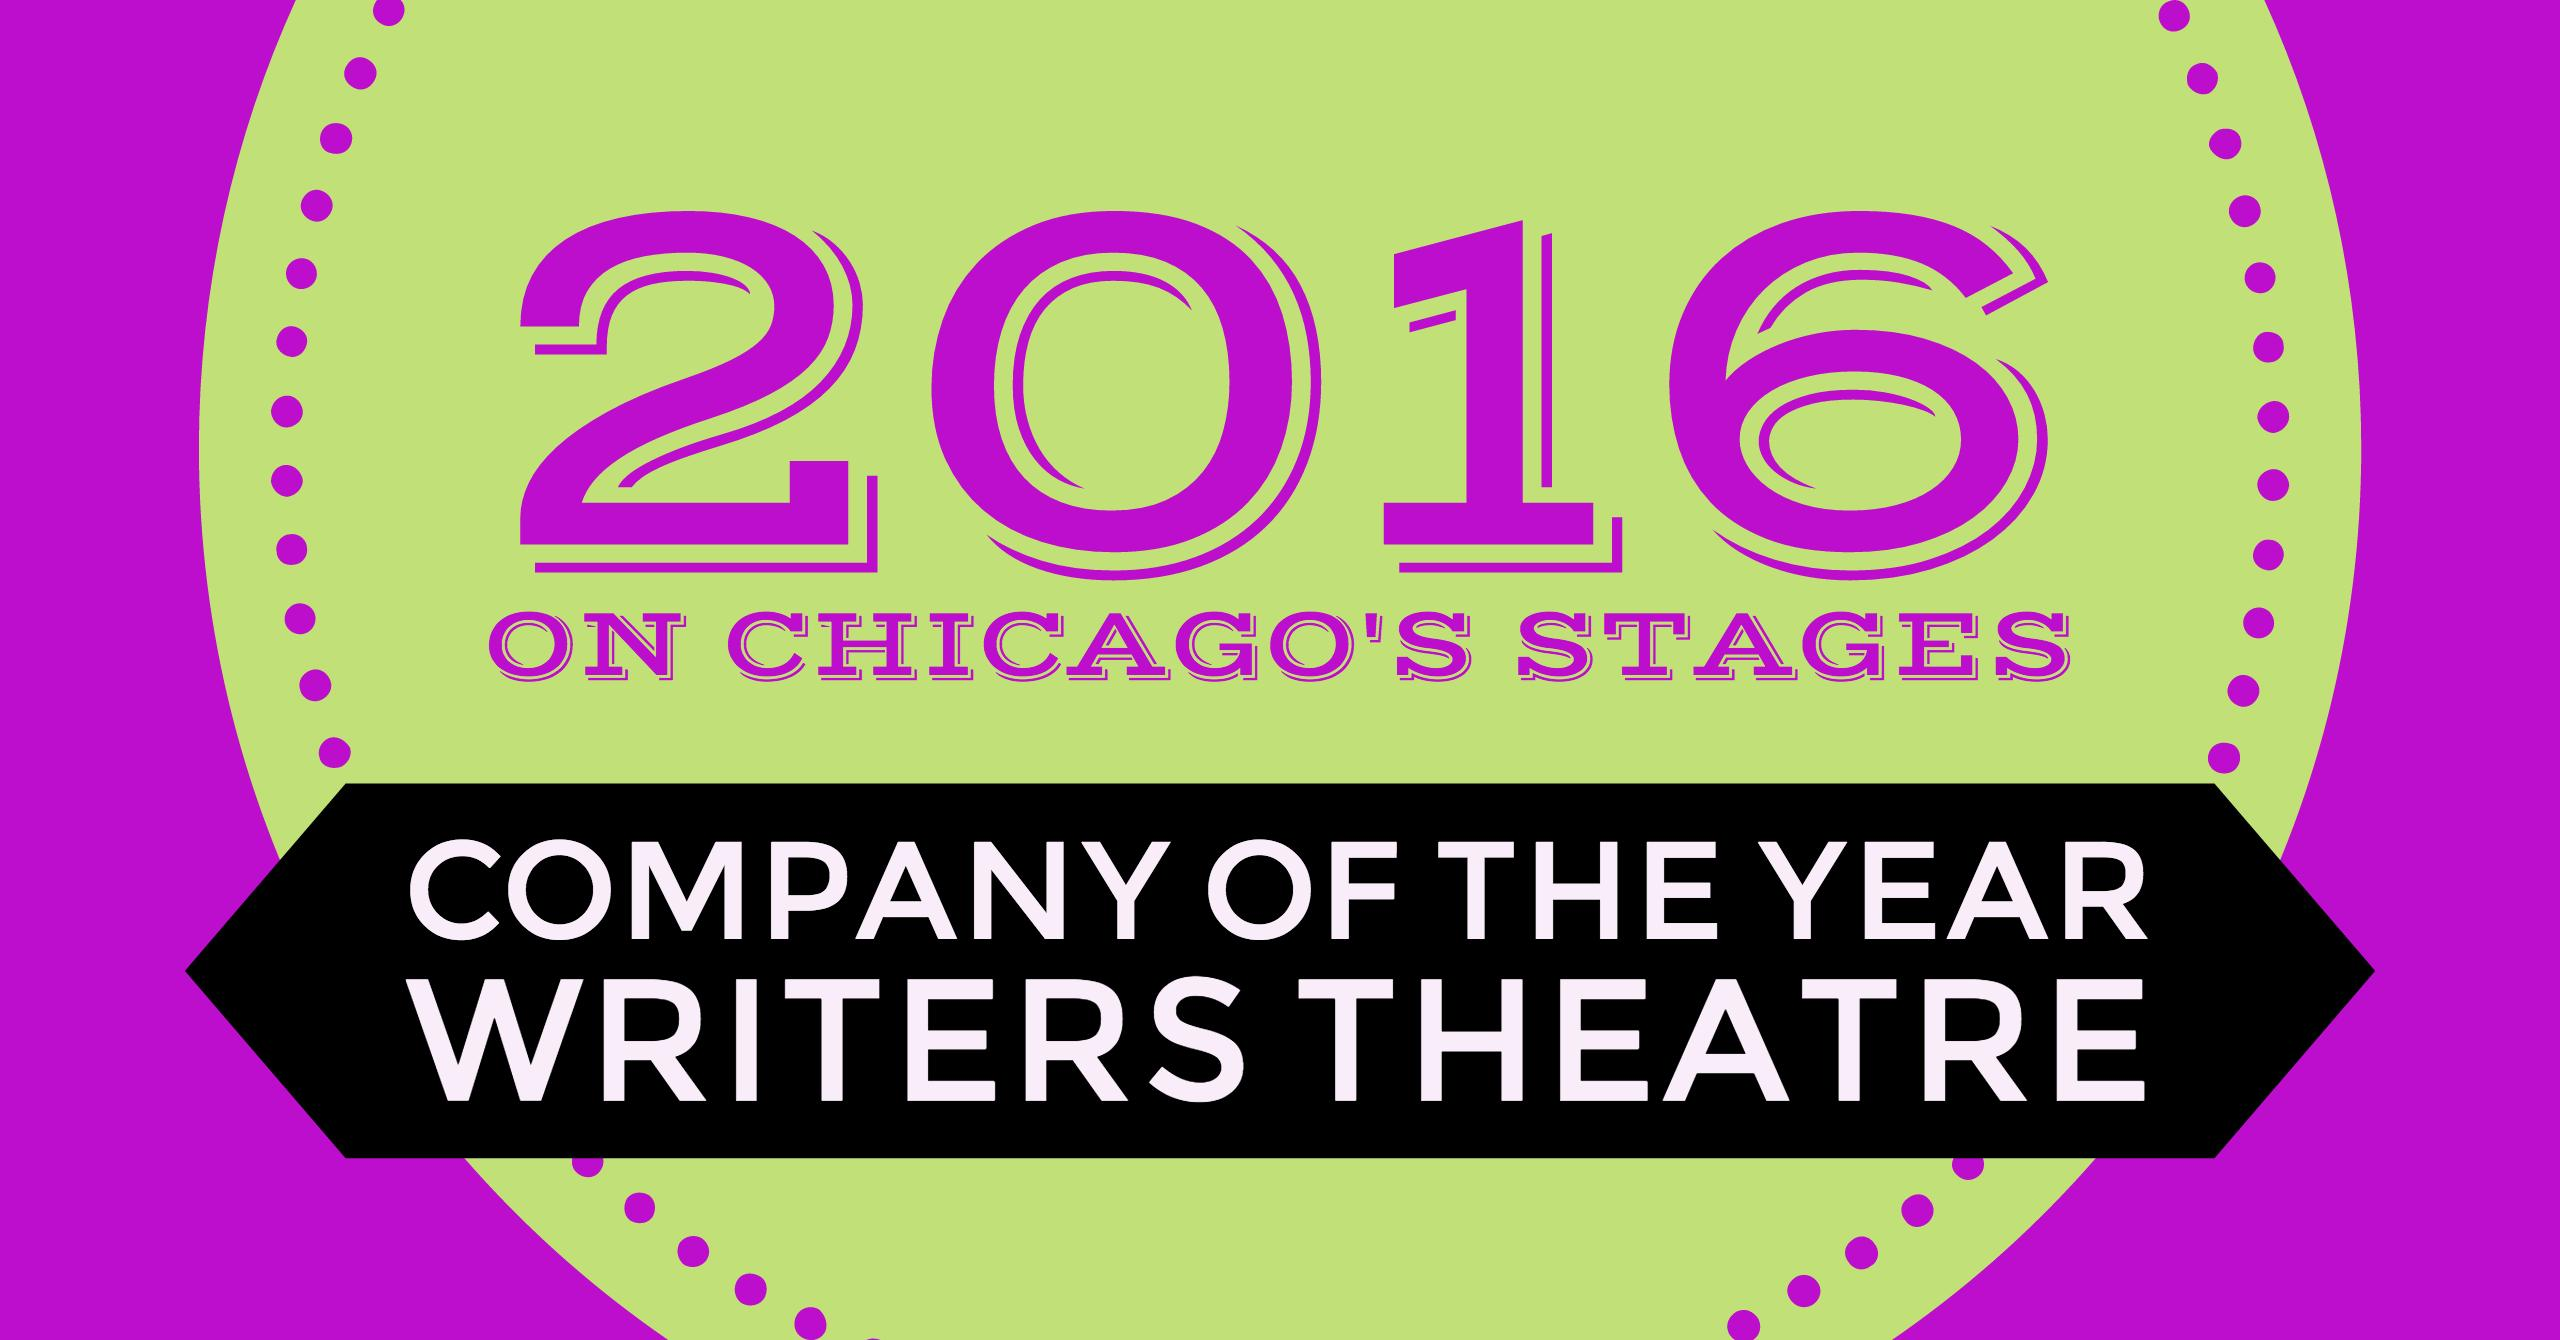 2016 Company of the Year: Writers Theatre